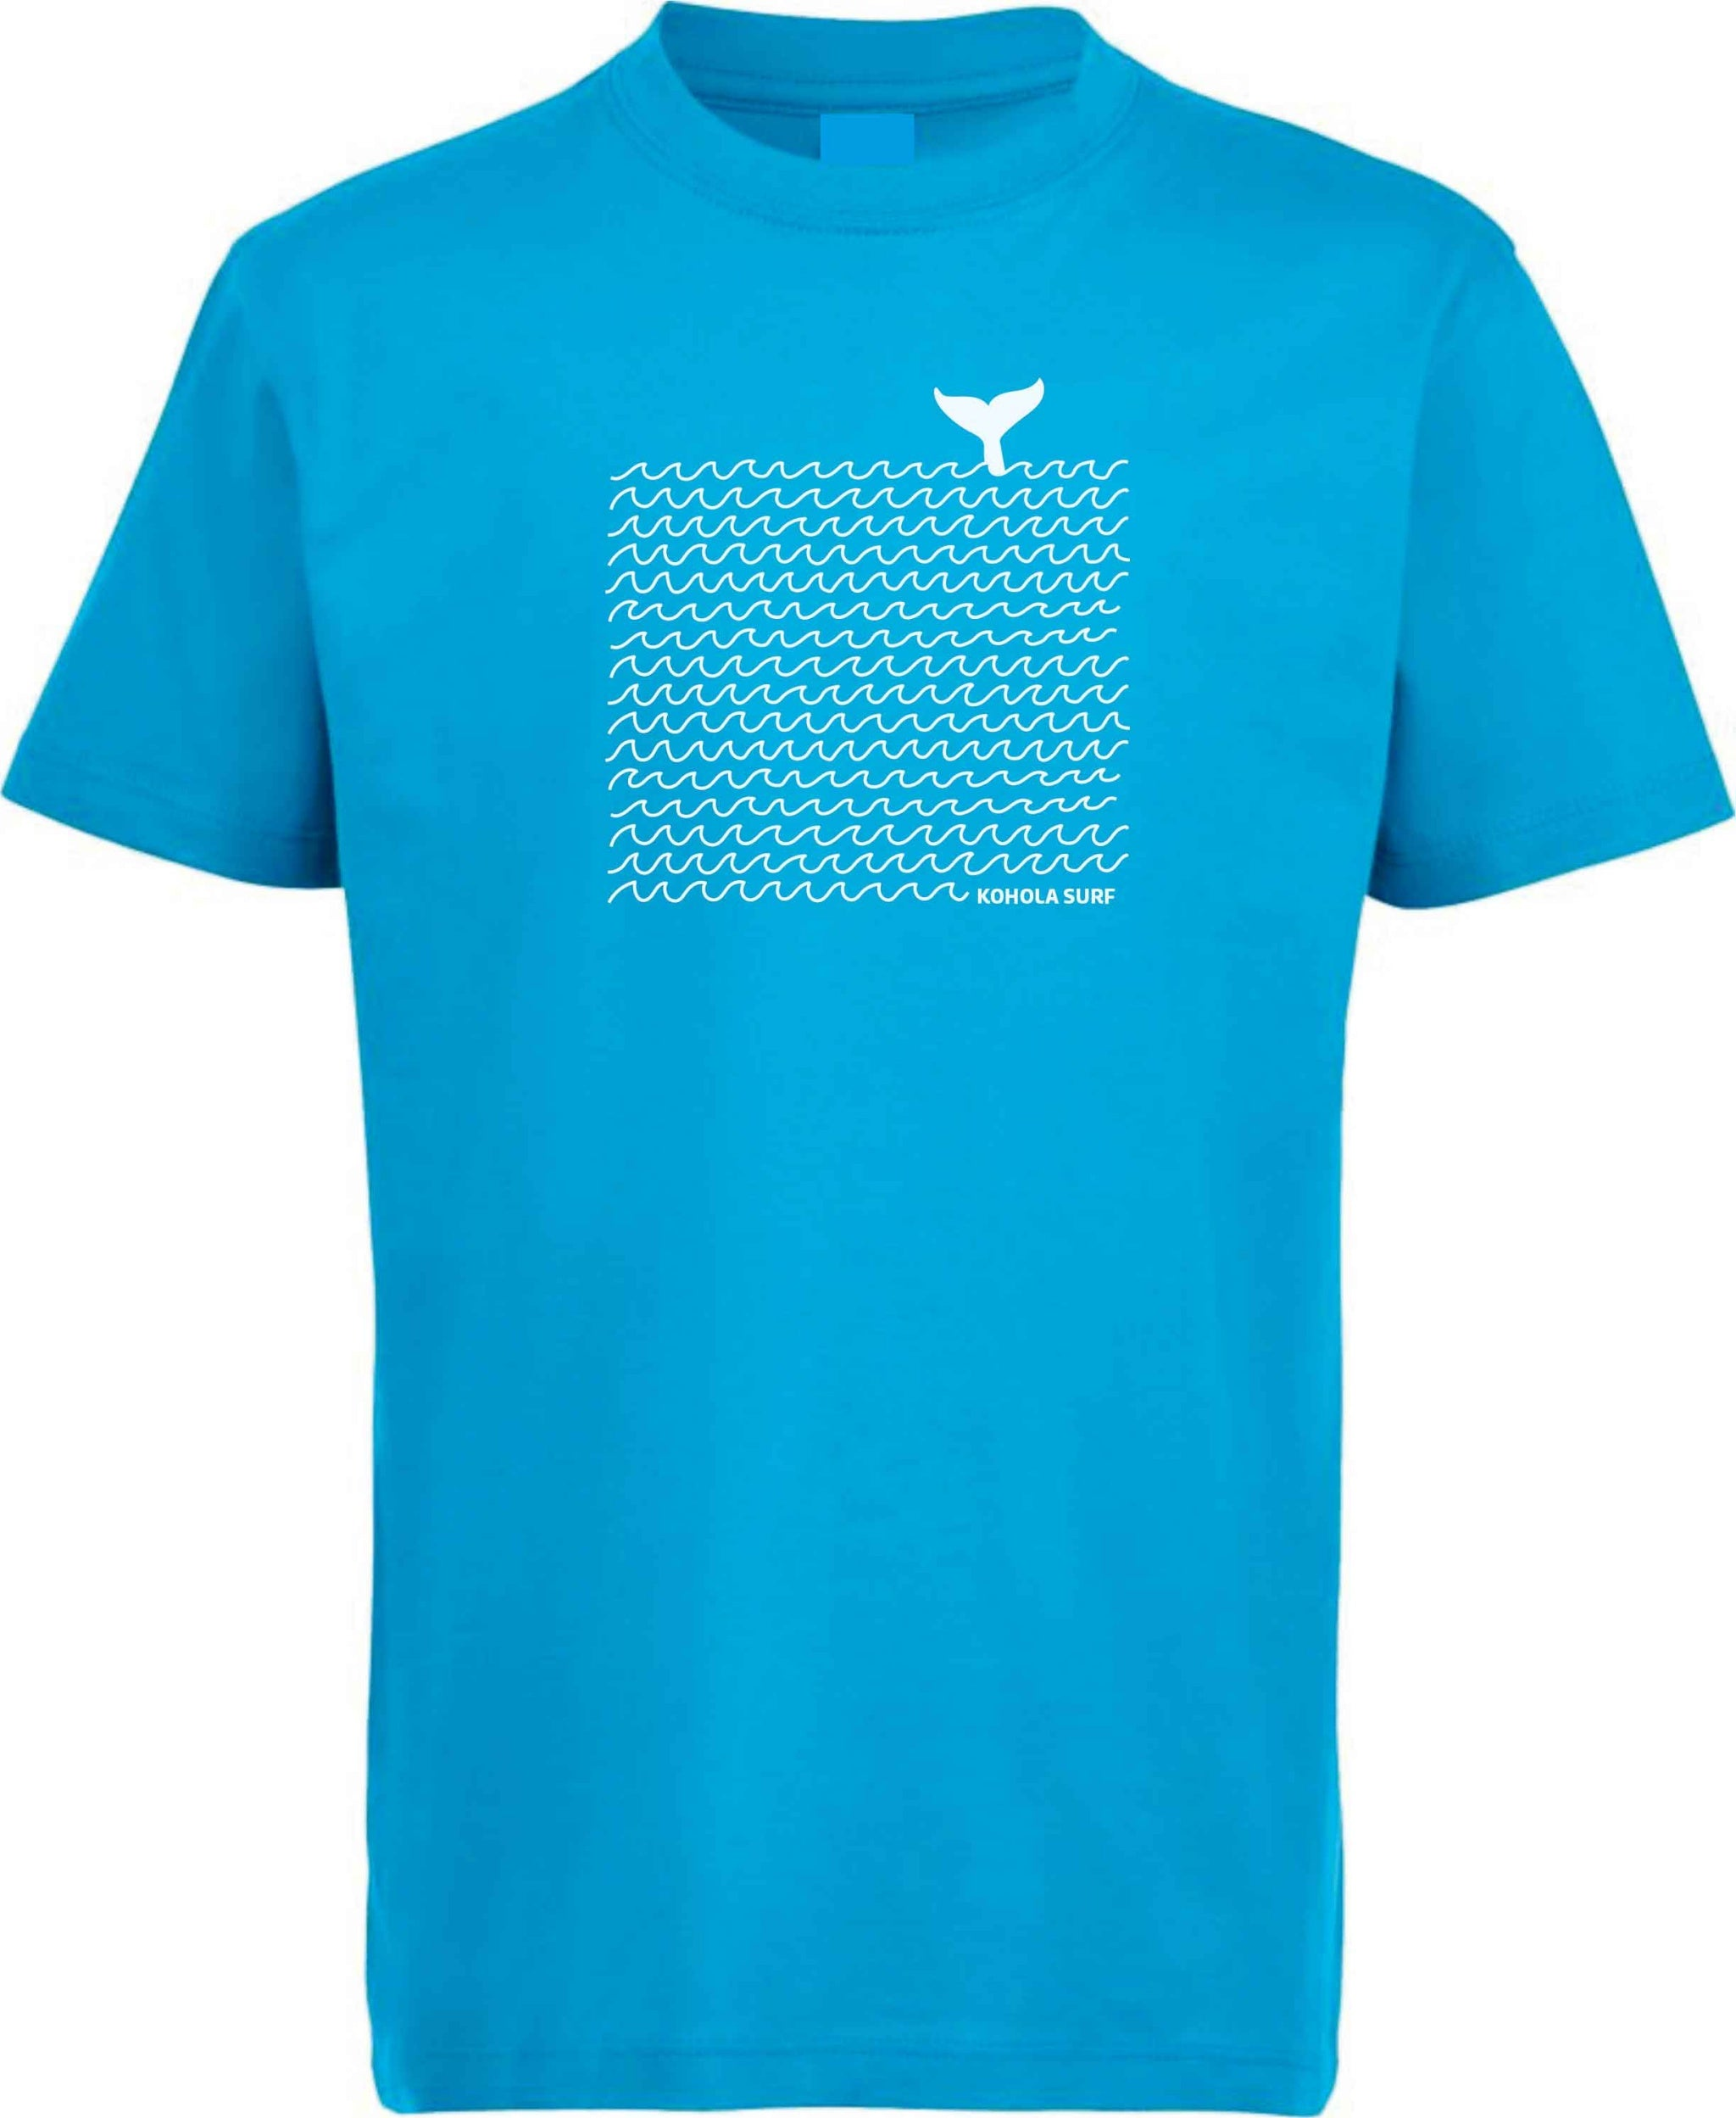 Whale & Waves Kids Tee